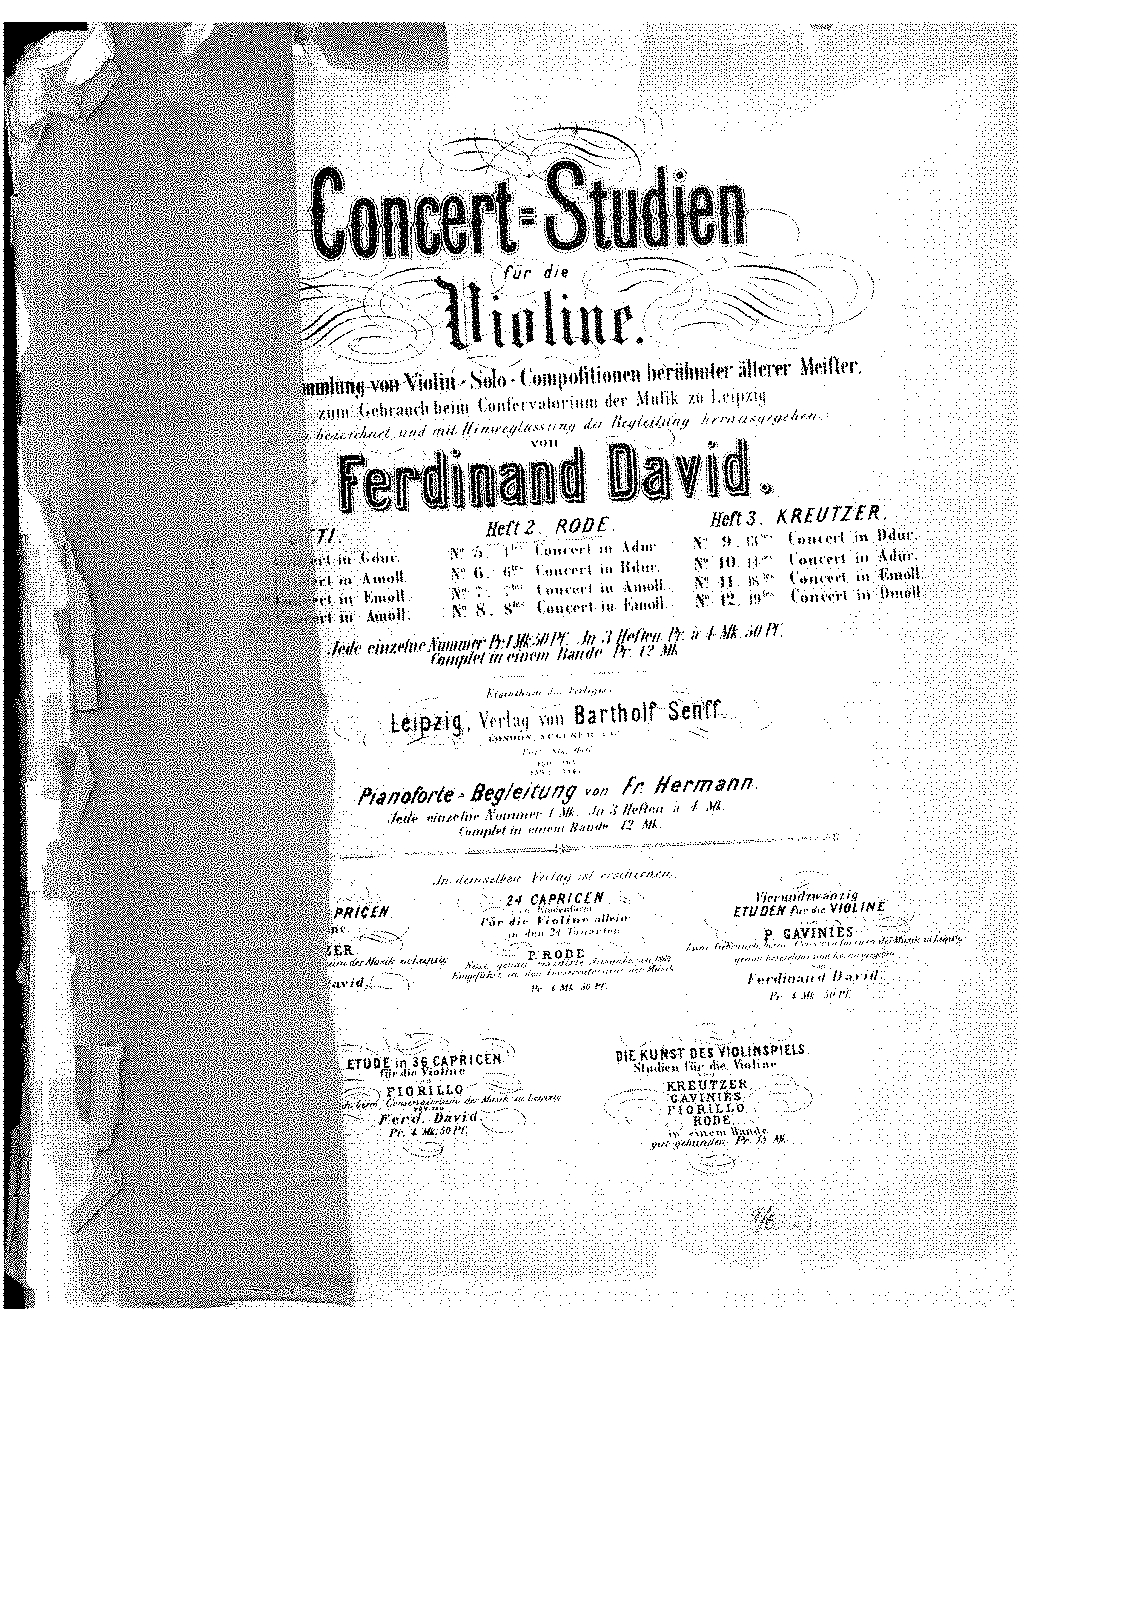 PMLP53846-David conc stud vol 2 No 5 conc 4 Rode.pdf